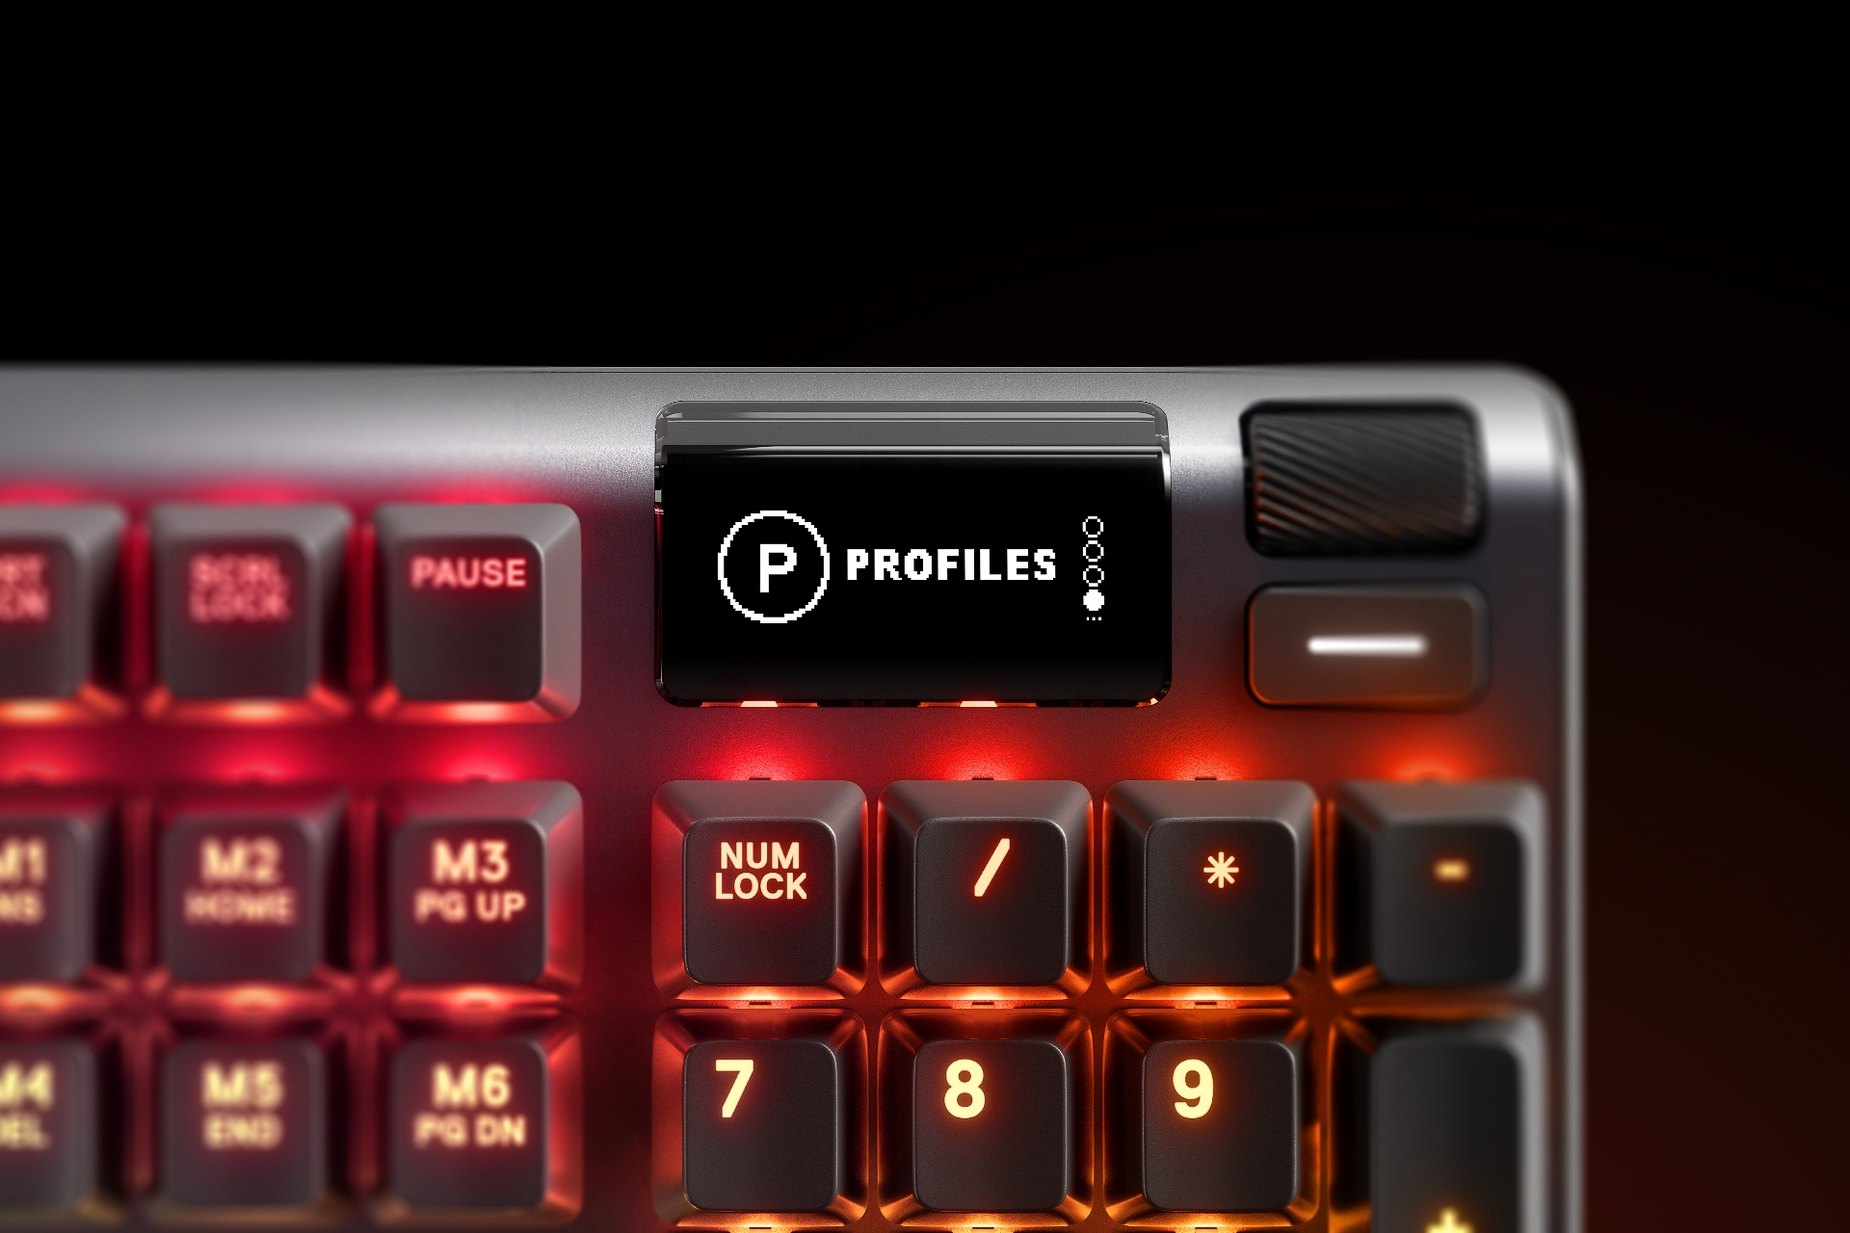 Zoomed in view of the multimedia and settings controls/volume roller on the Thai - Apex 7 (Red Switch) gaming keyboard